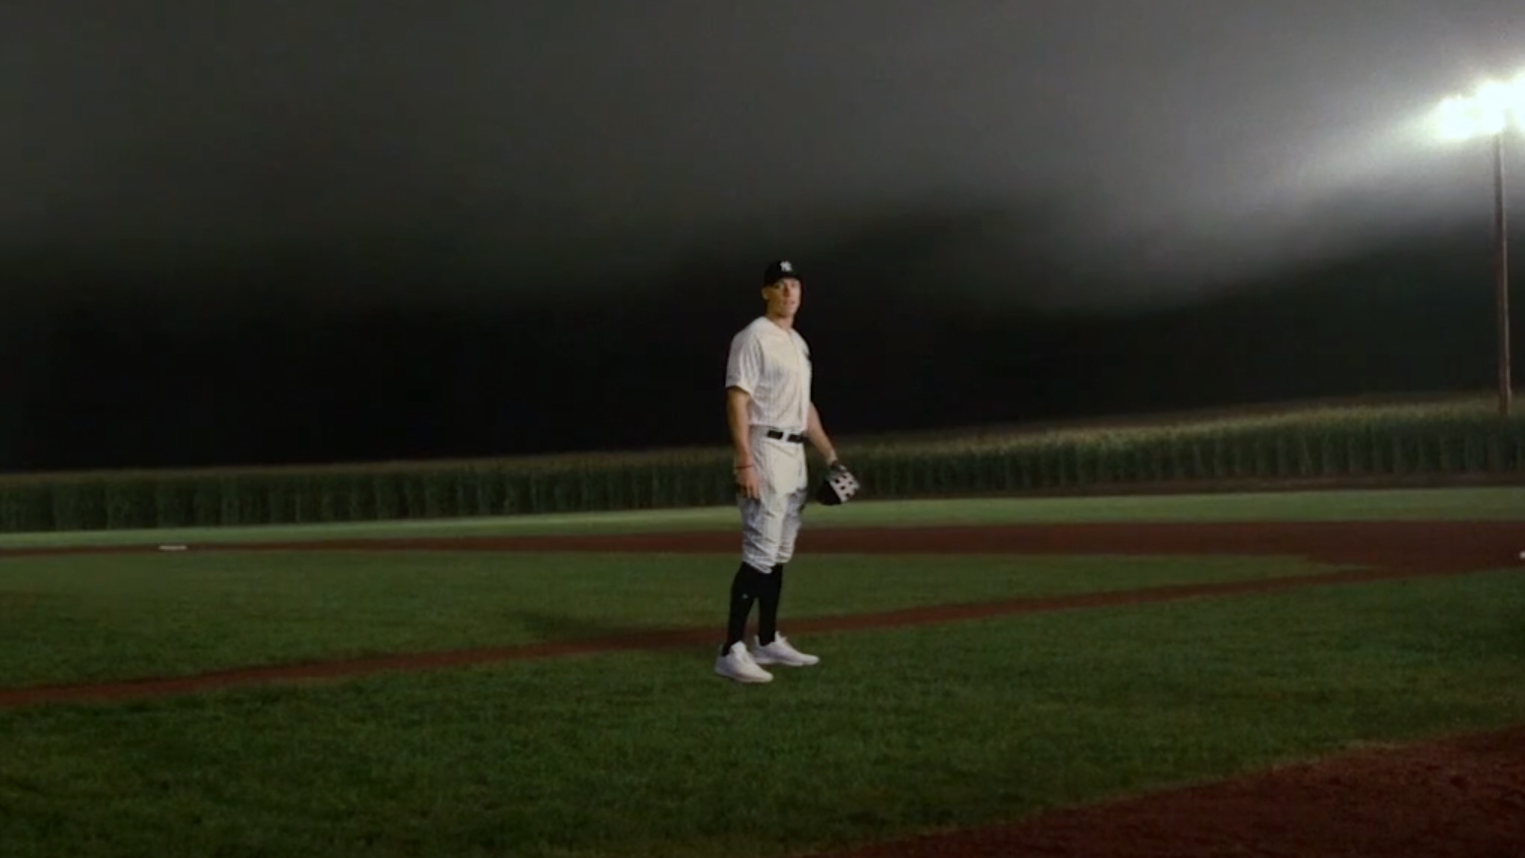 If you build it    White Sox, Yankees to play at 'Field of Dreams